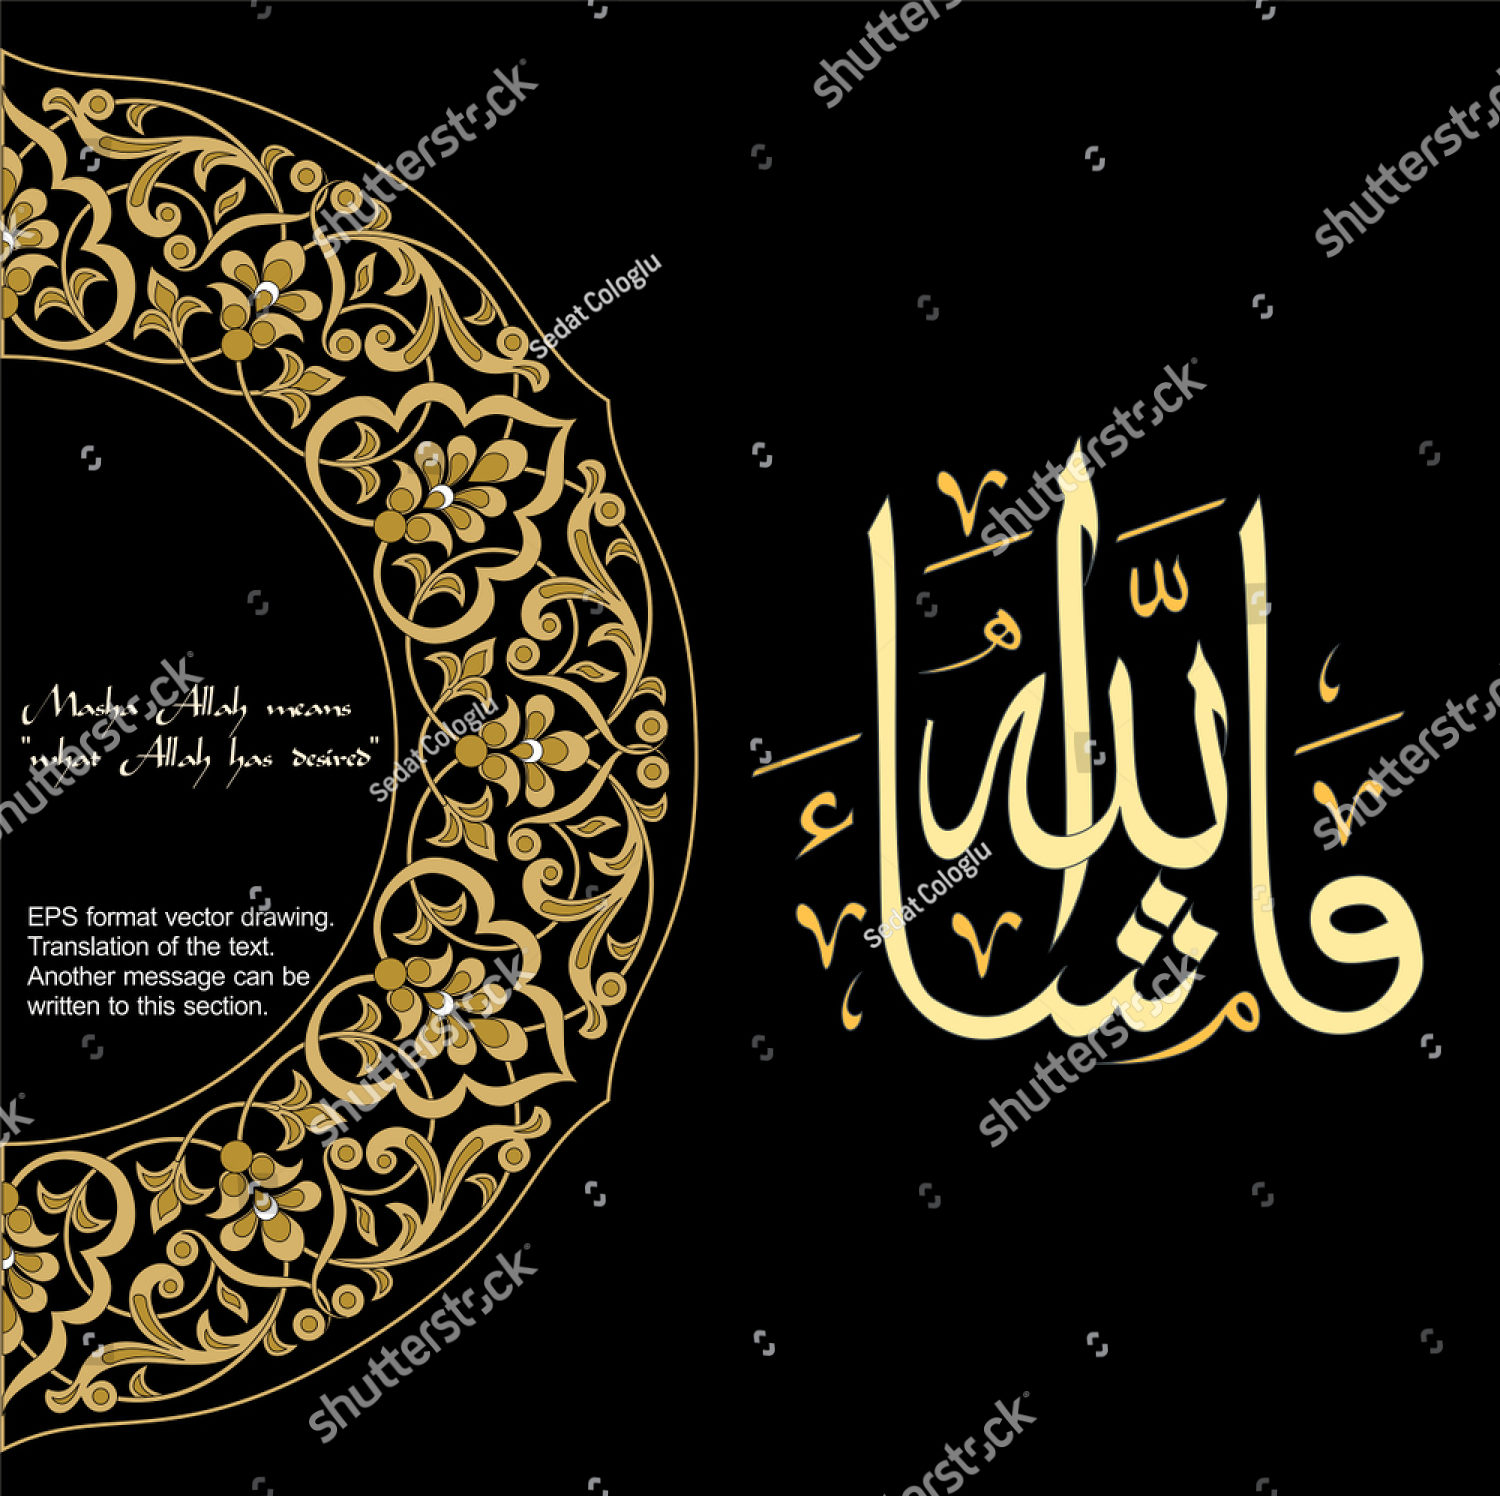 stock-vector-vector-arabic-masha-allah-means-what-allah-has-desired-wall-panel-gift-card-decorative-1264225078